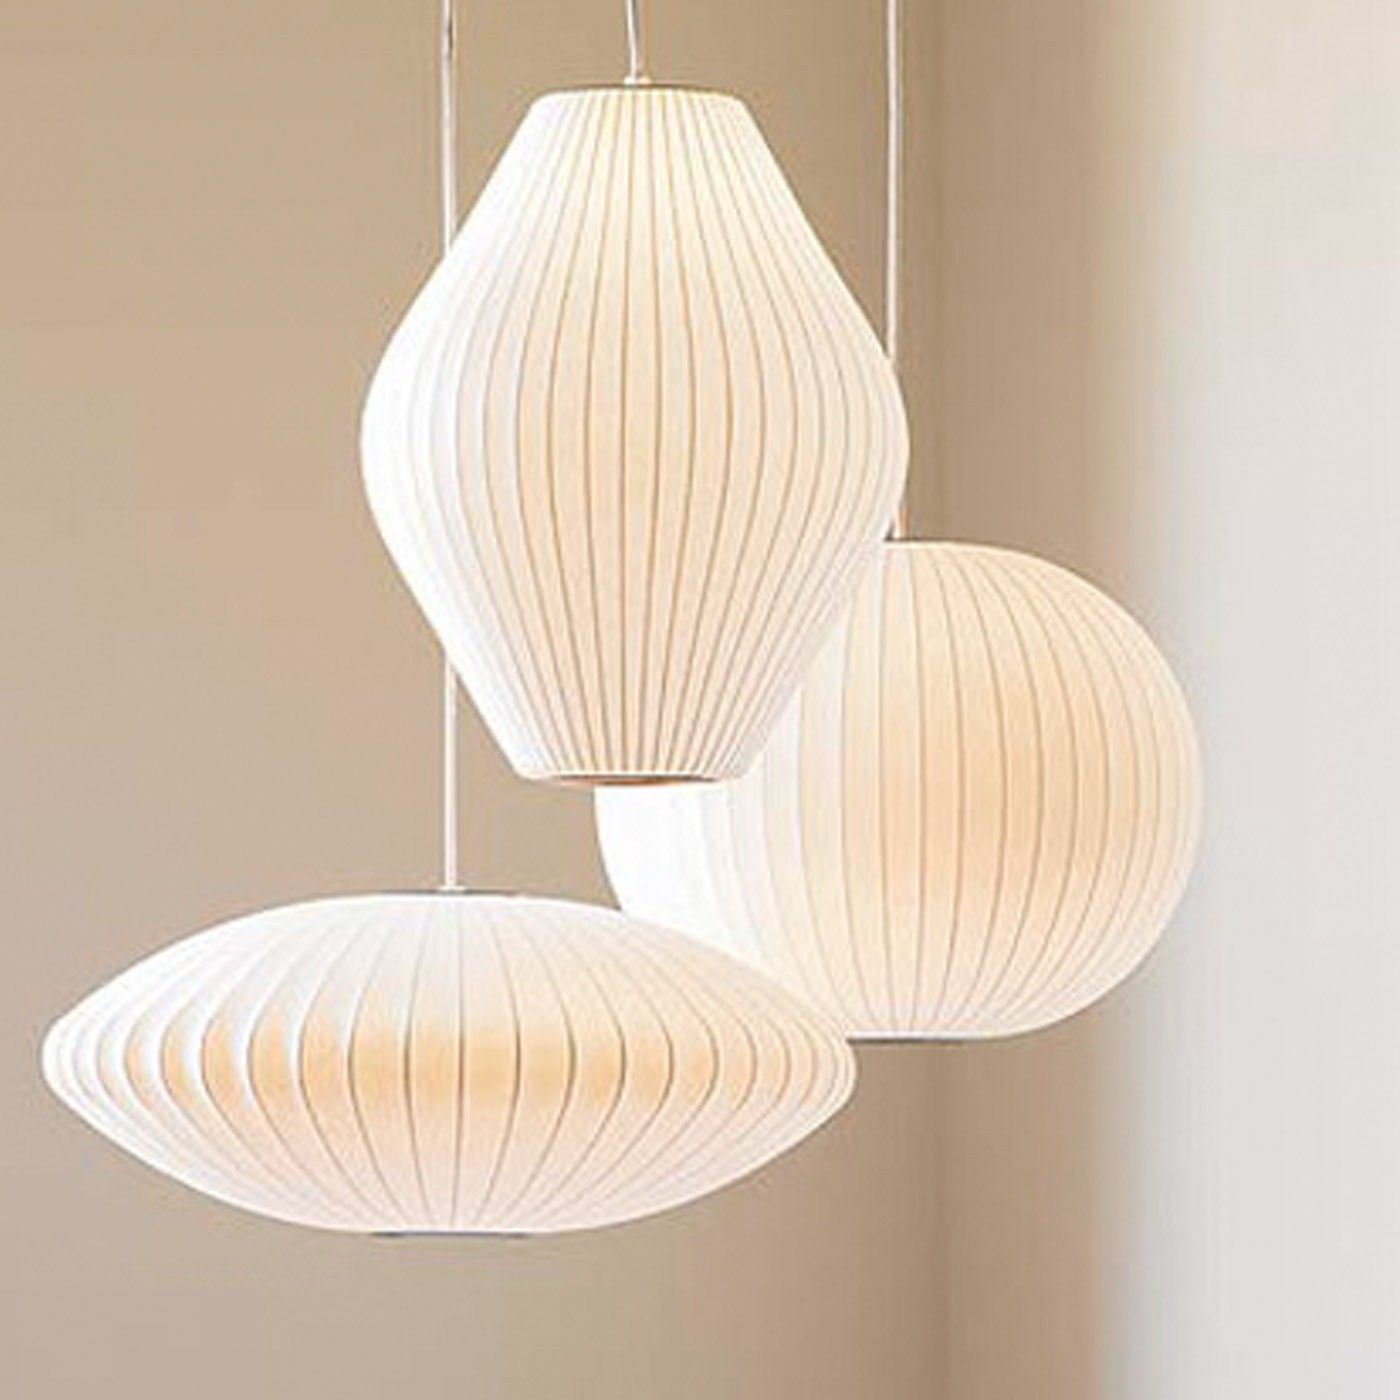 The Bubble Lamp Was Designed By George Nelson In 1947 As